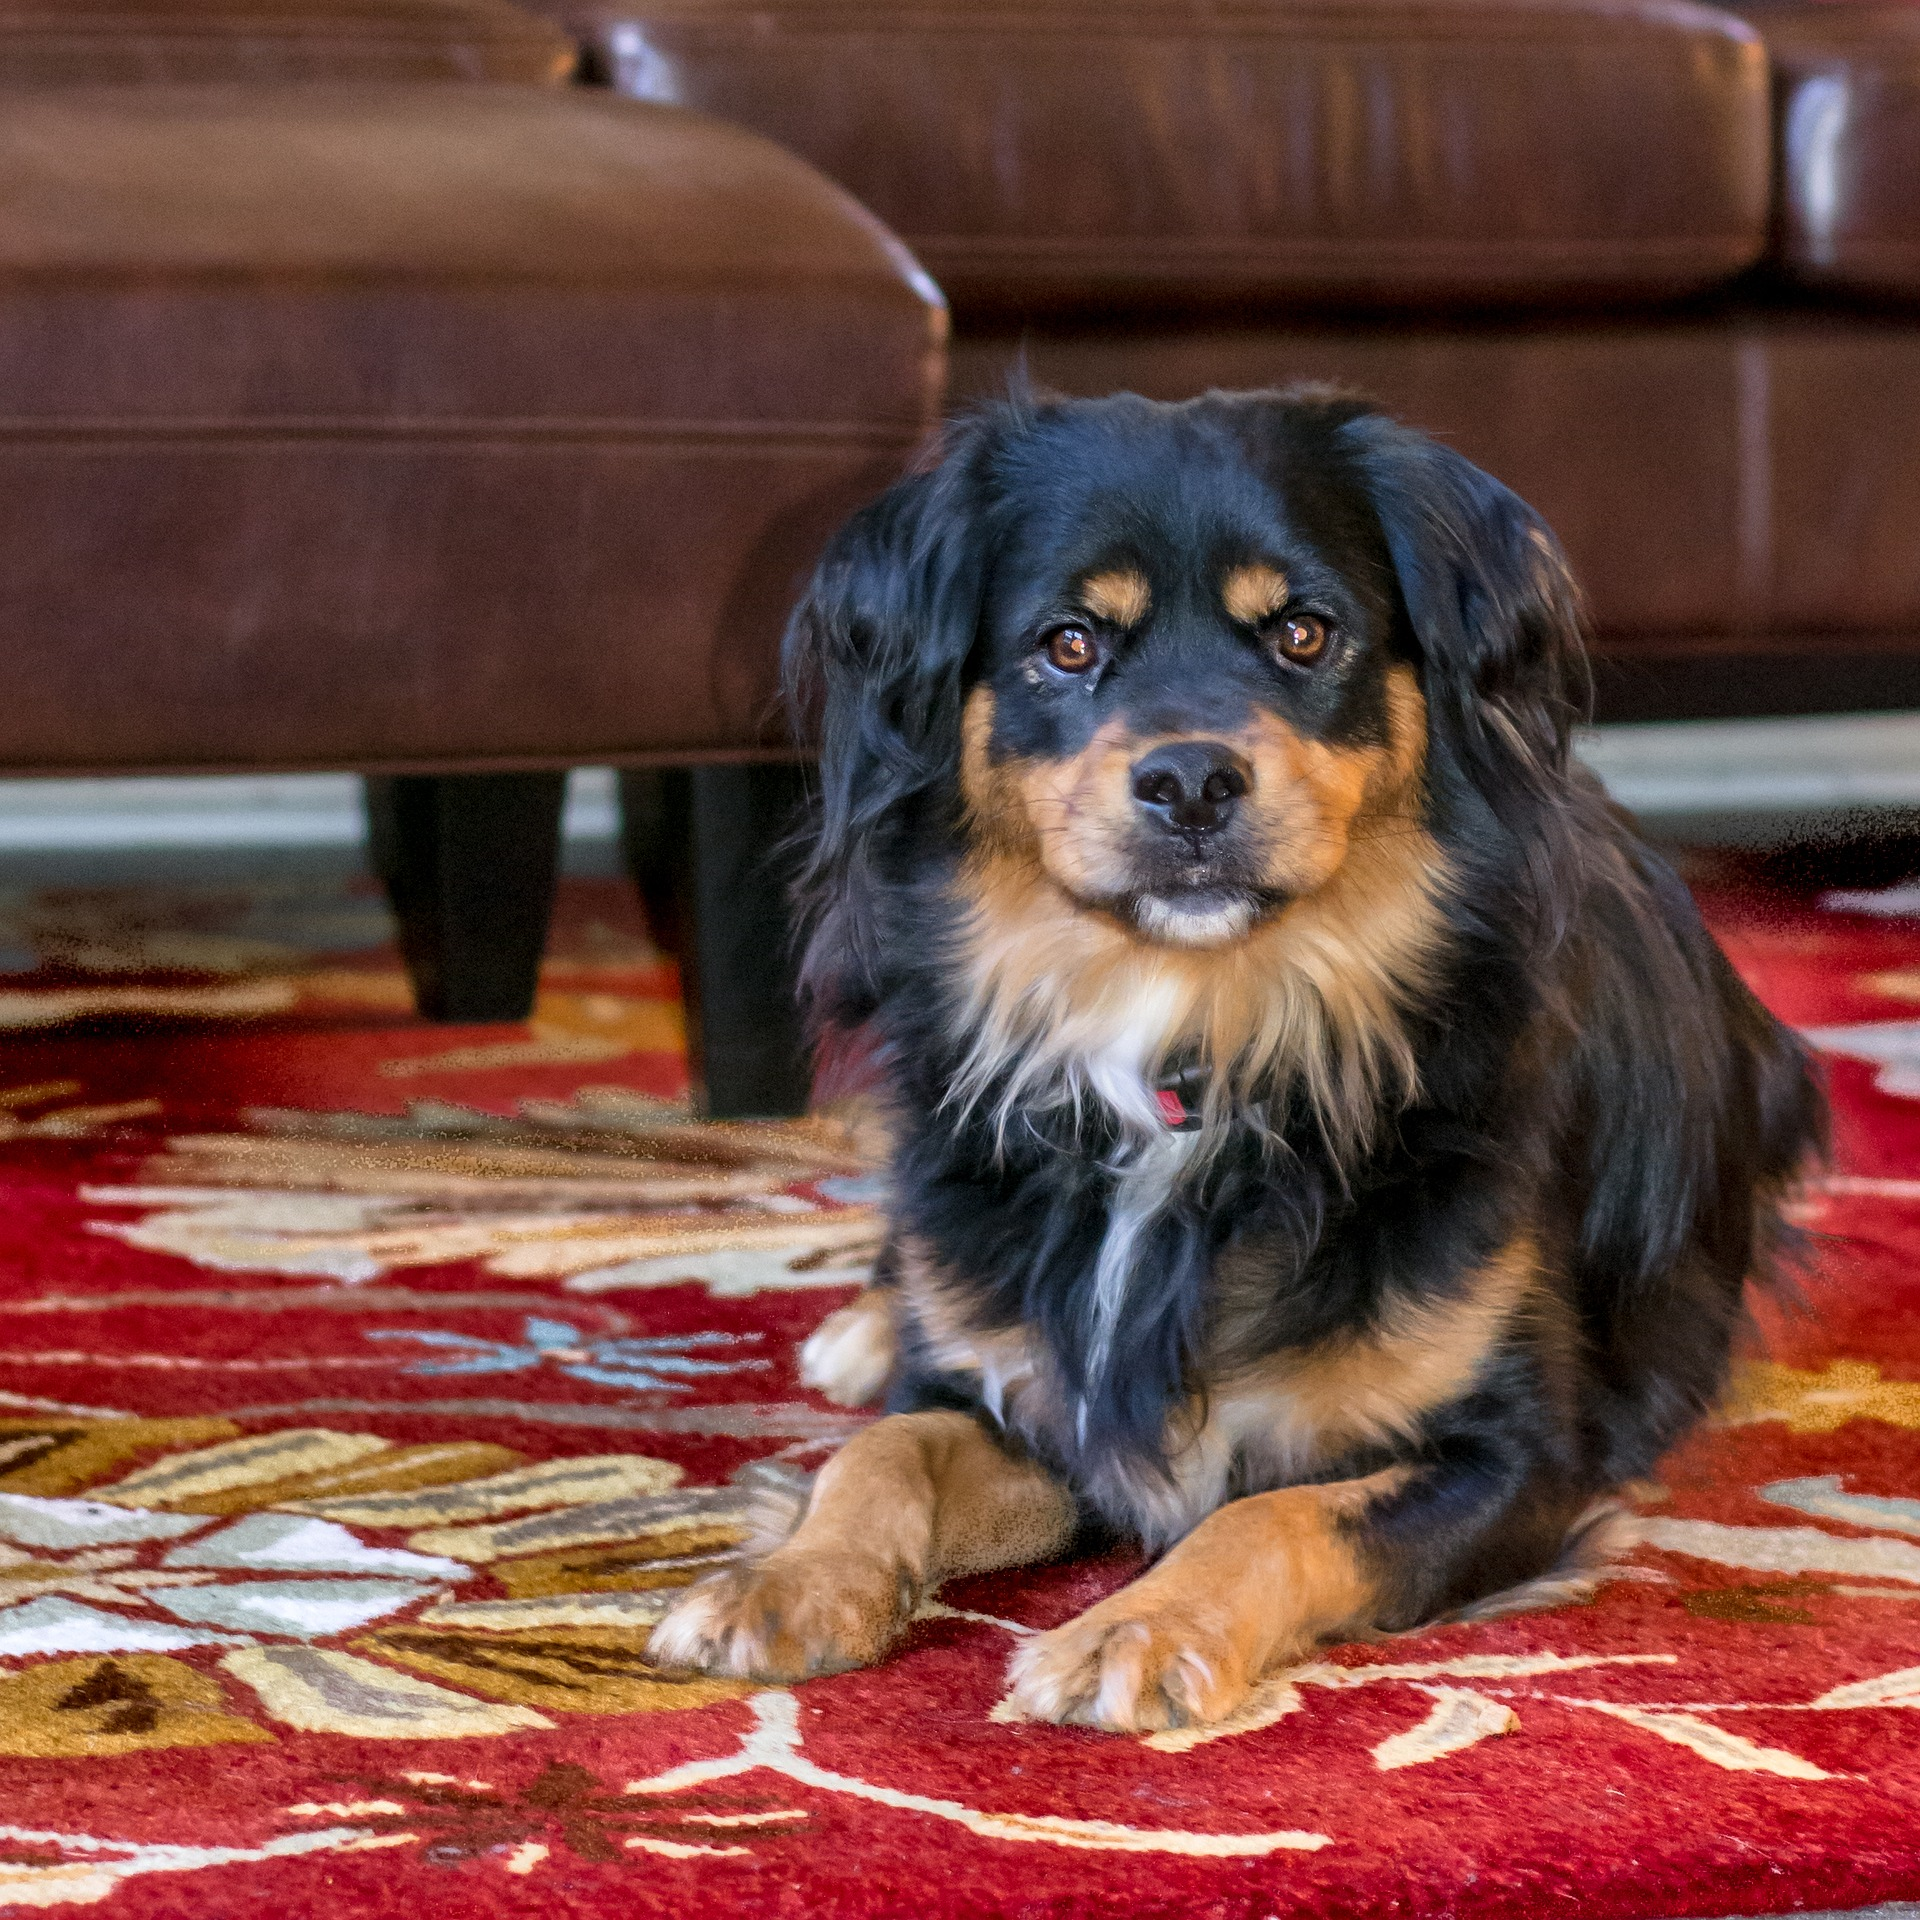 Black and brown dog lounging in family room red flower rug